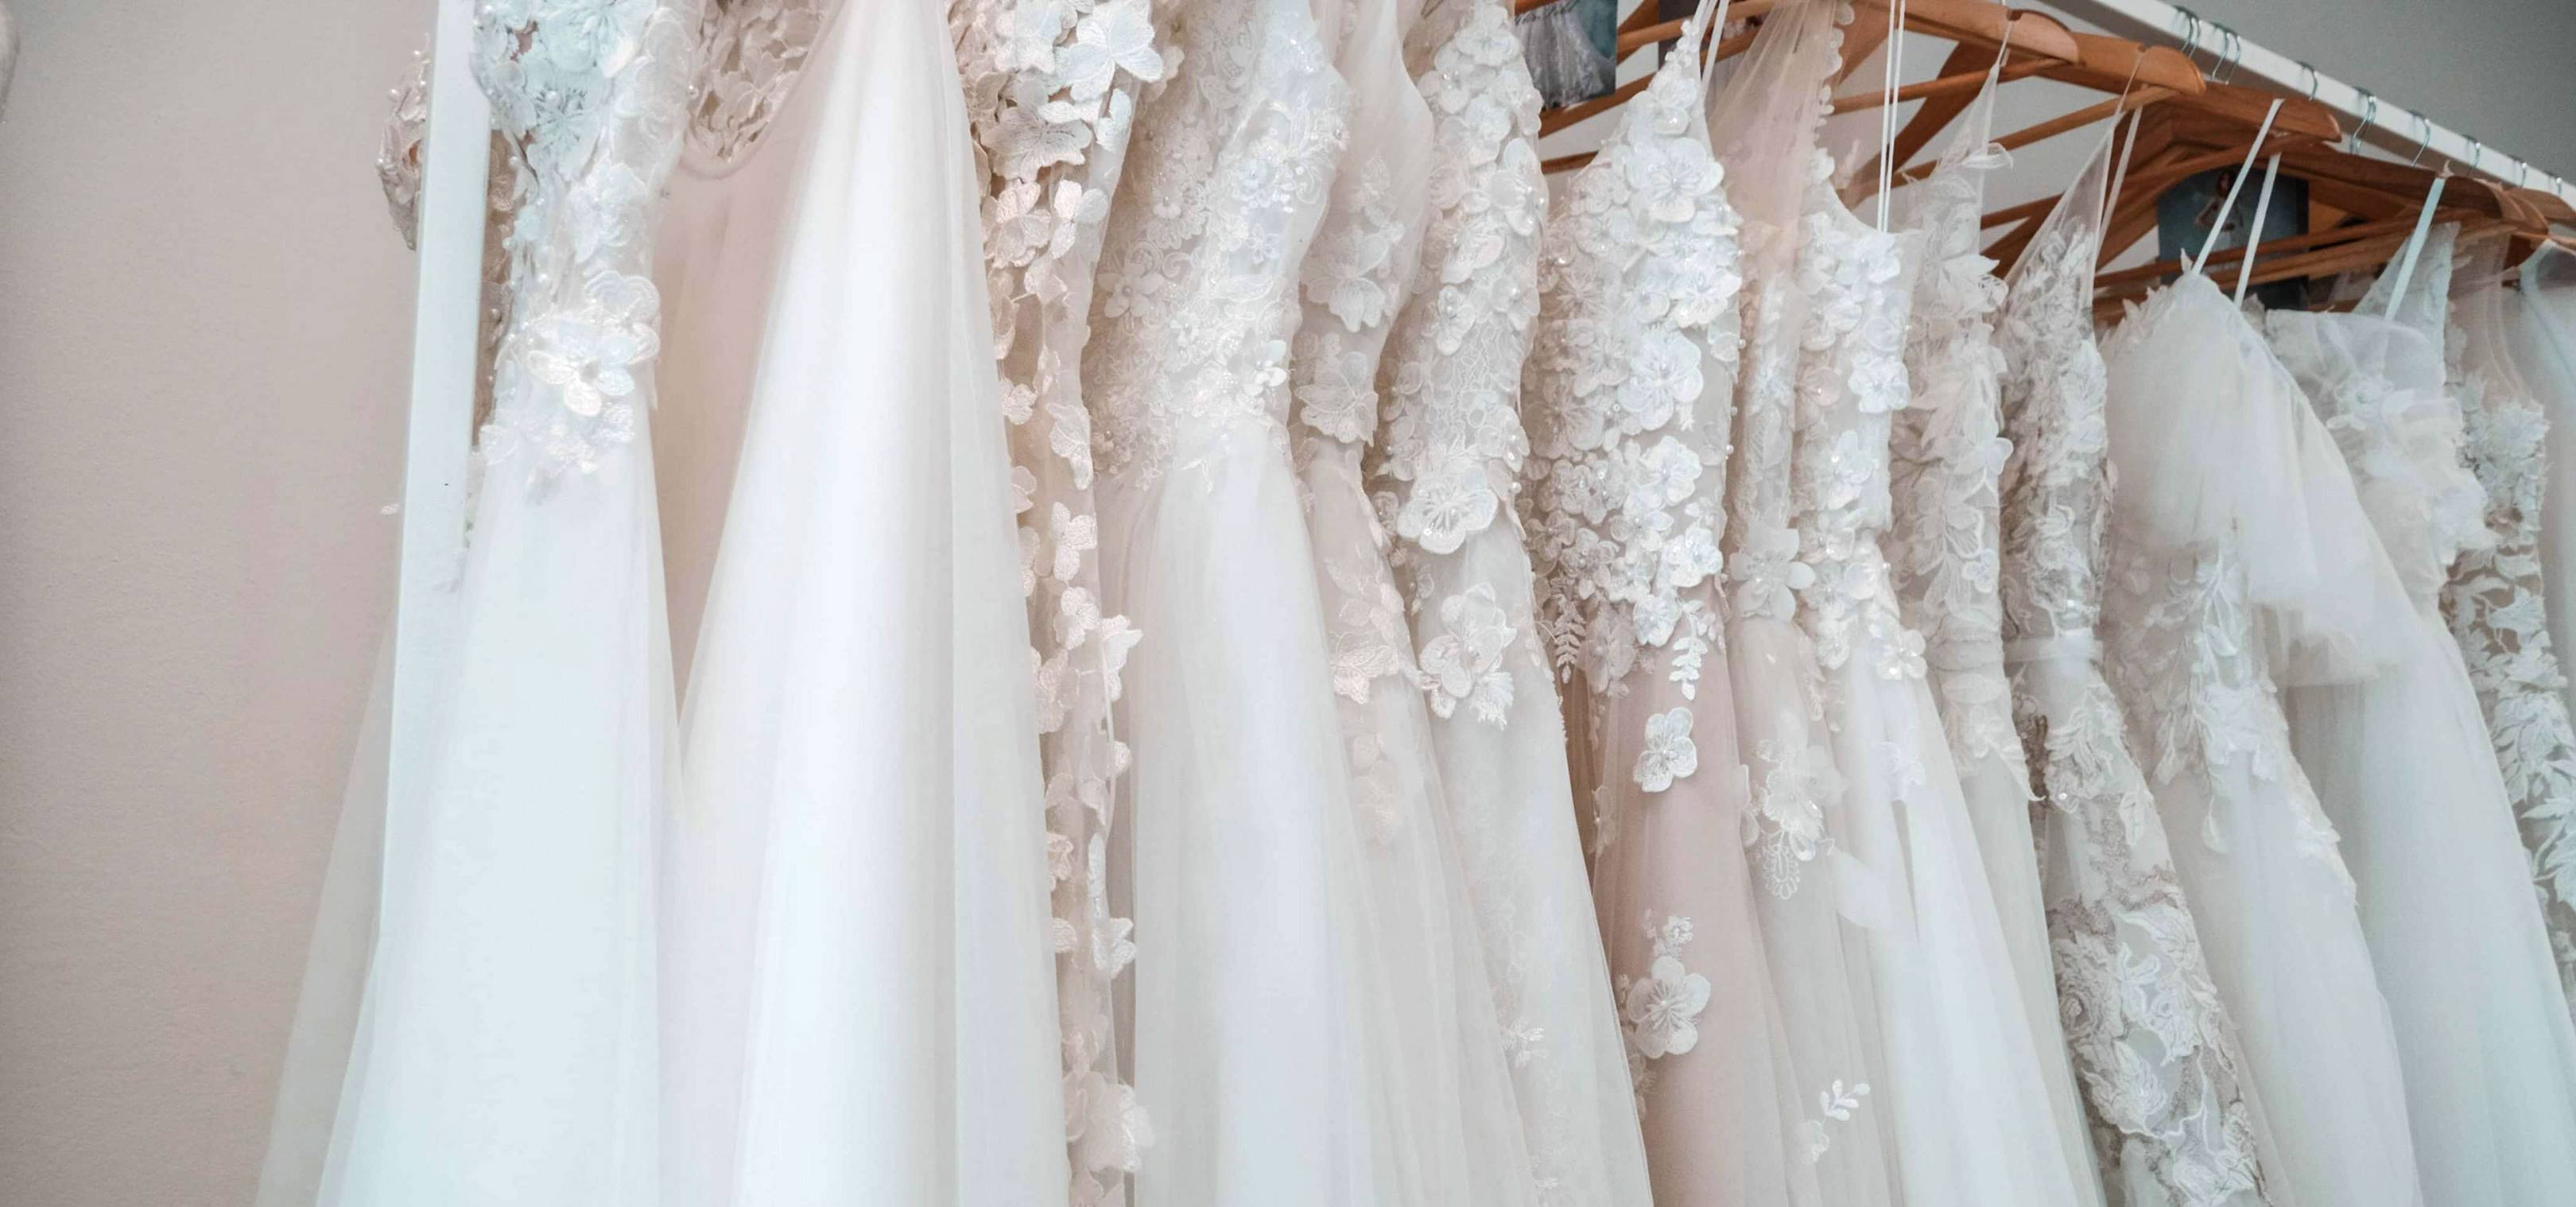 A really practical guide to wedding dress shopping from the pros